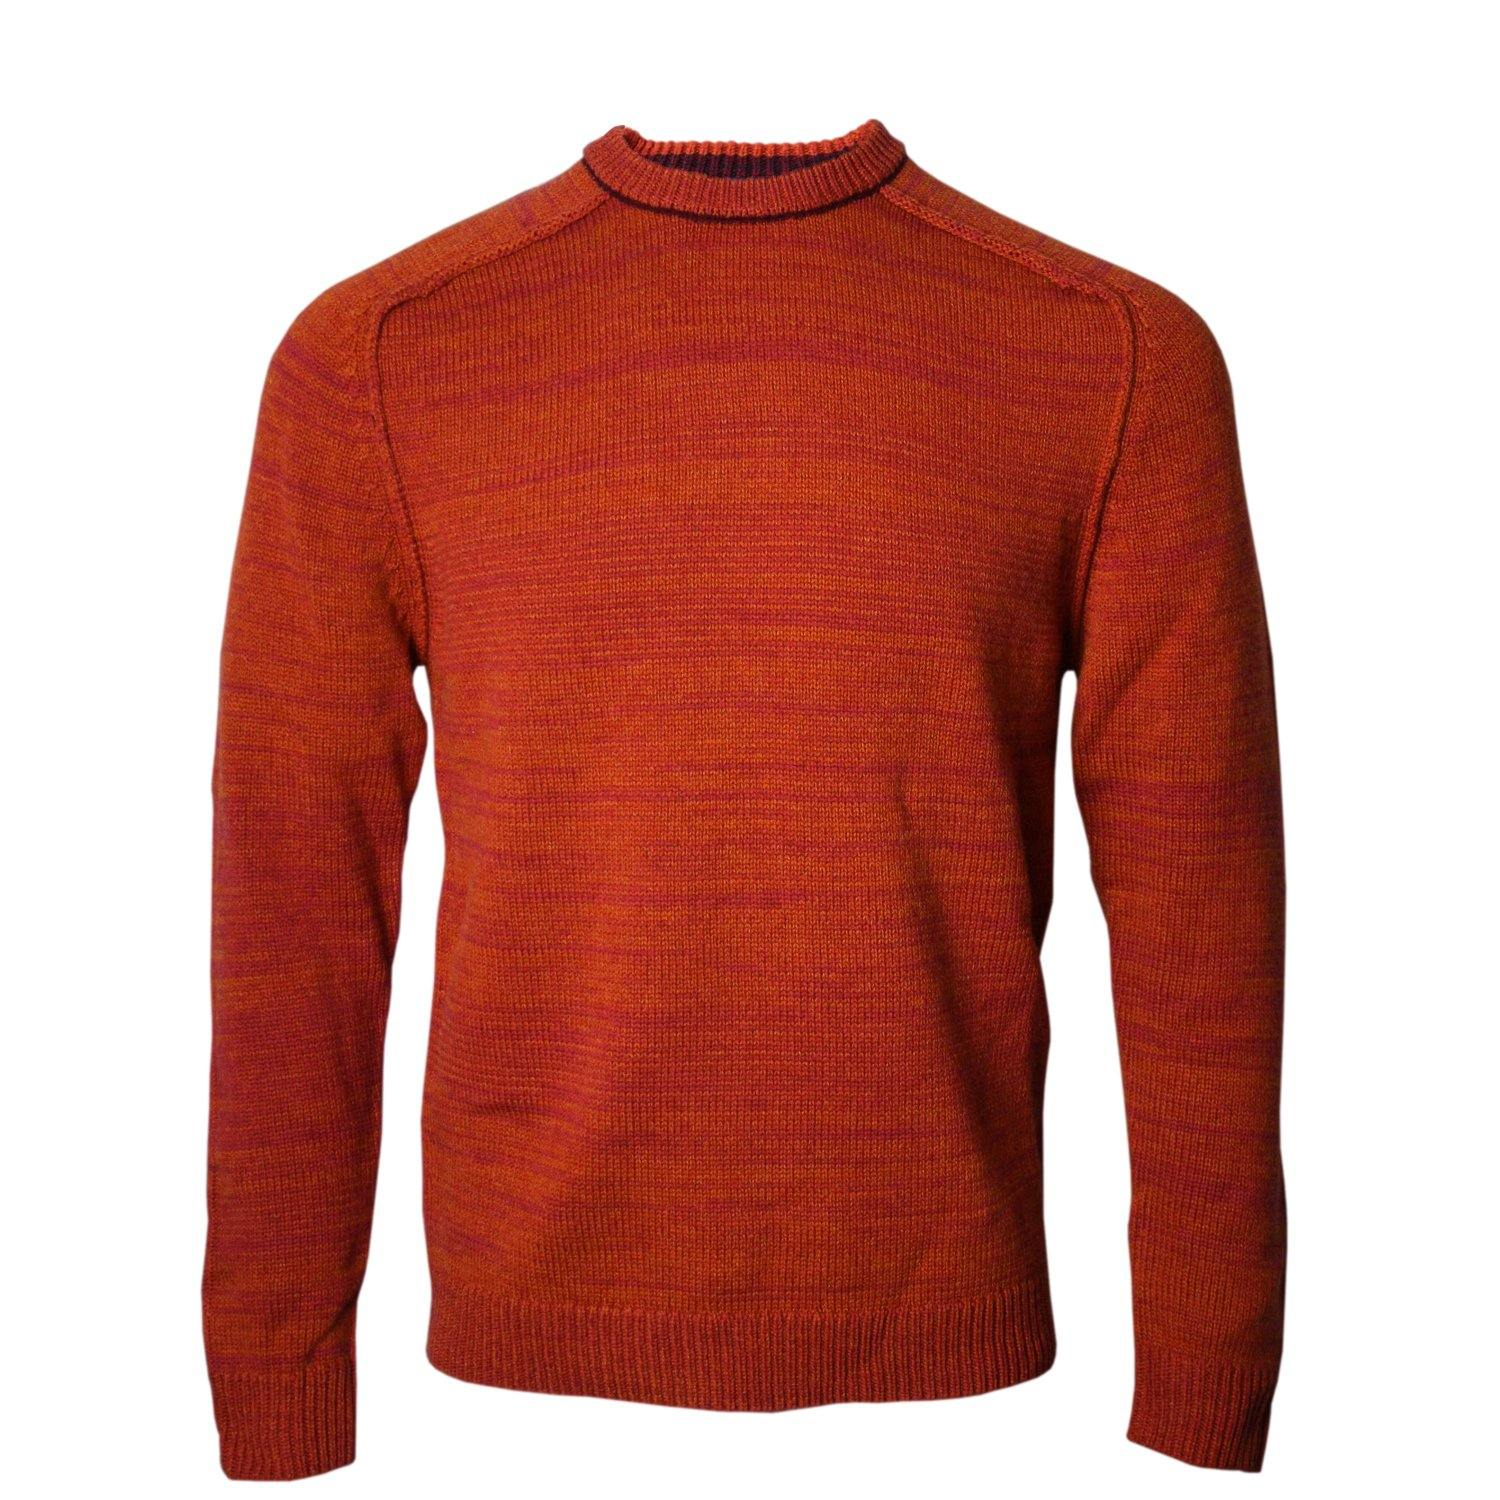 Crosby Crew Neck Sweater in Rust